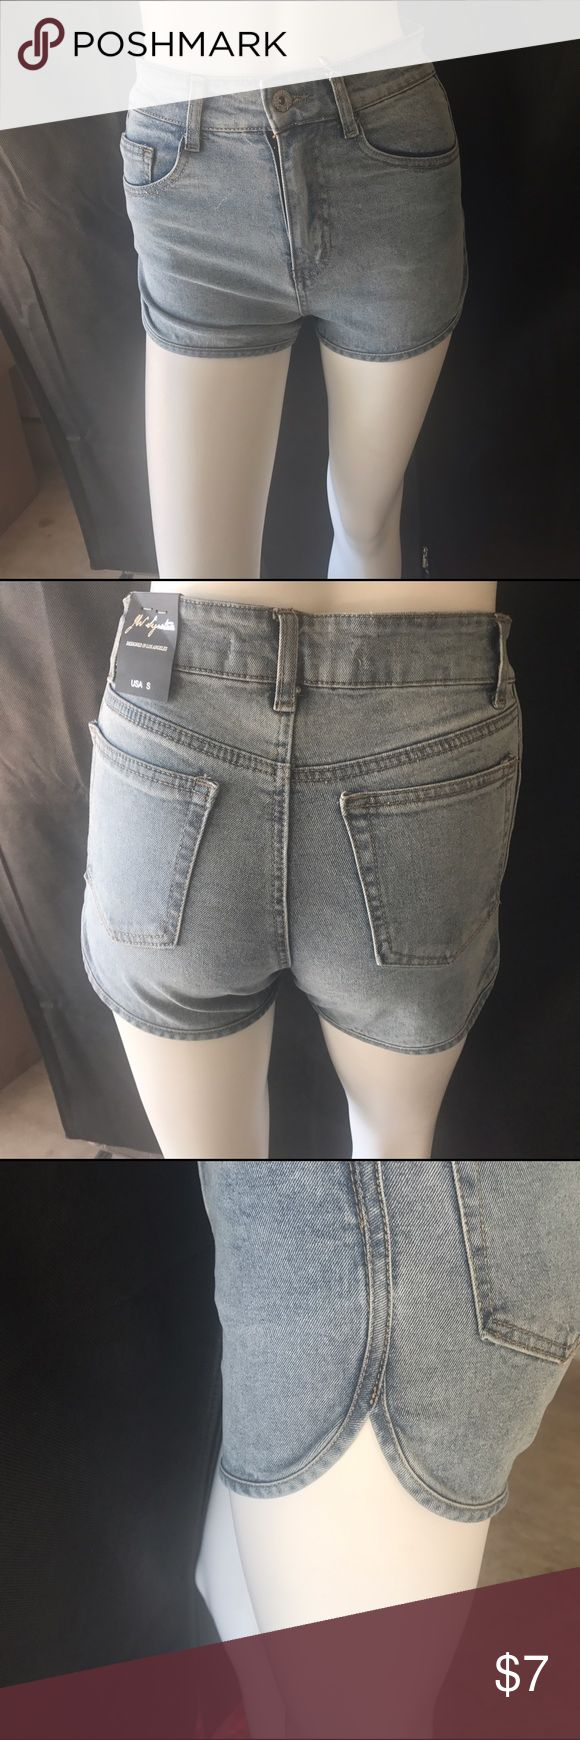 NWT $7 Summer Shorts Summer shorts. NWT. Various sizes. The shorts do run one size smaller. S fit like XS, etc. Converting size, so order the size you normally wear. ~No stretch~ Seven2Seven Shorts Jean Shorts